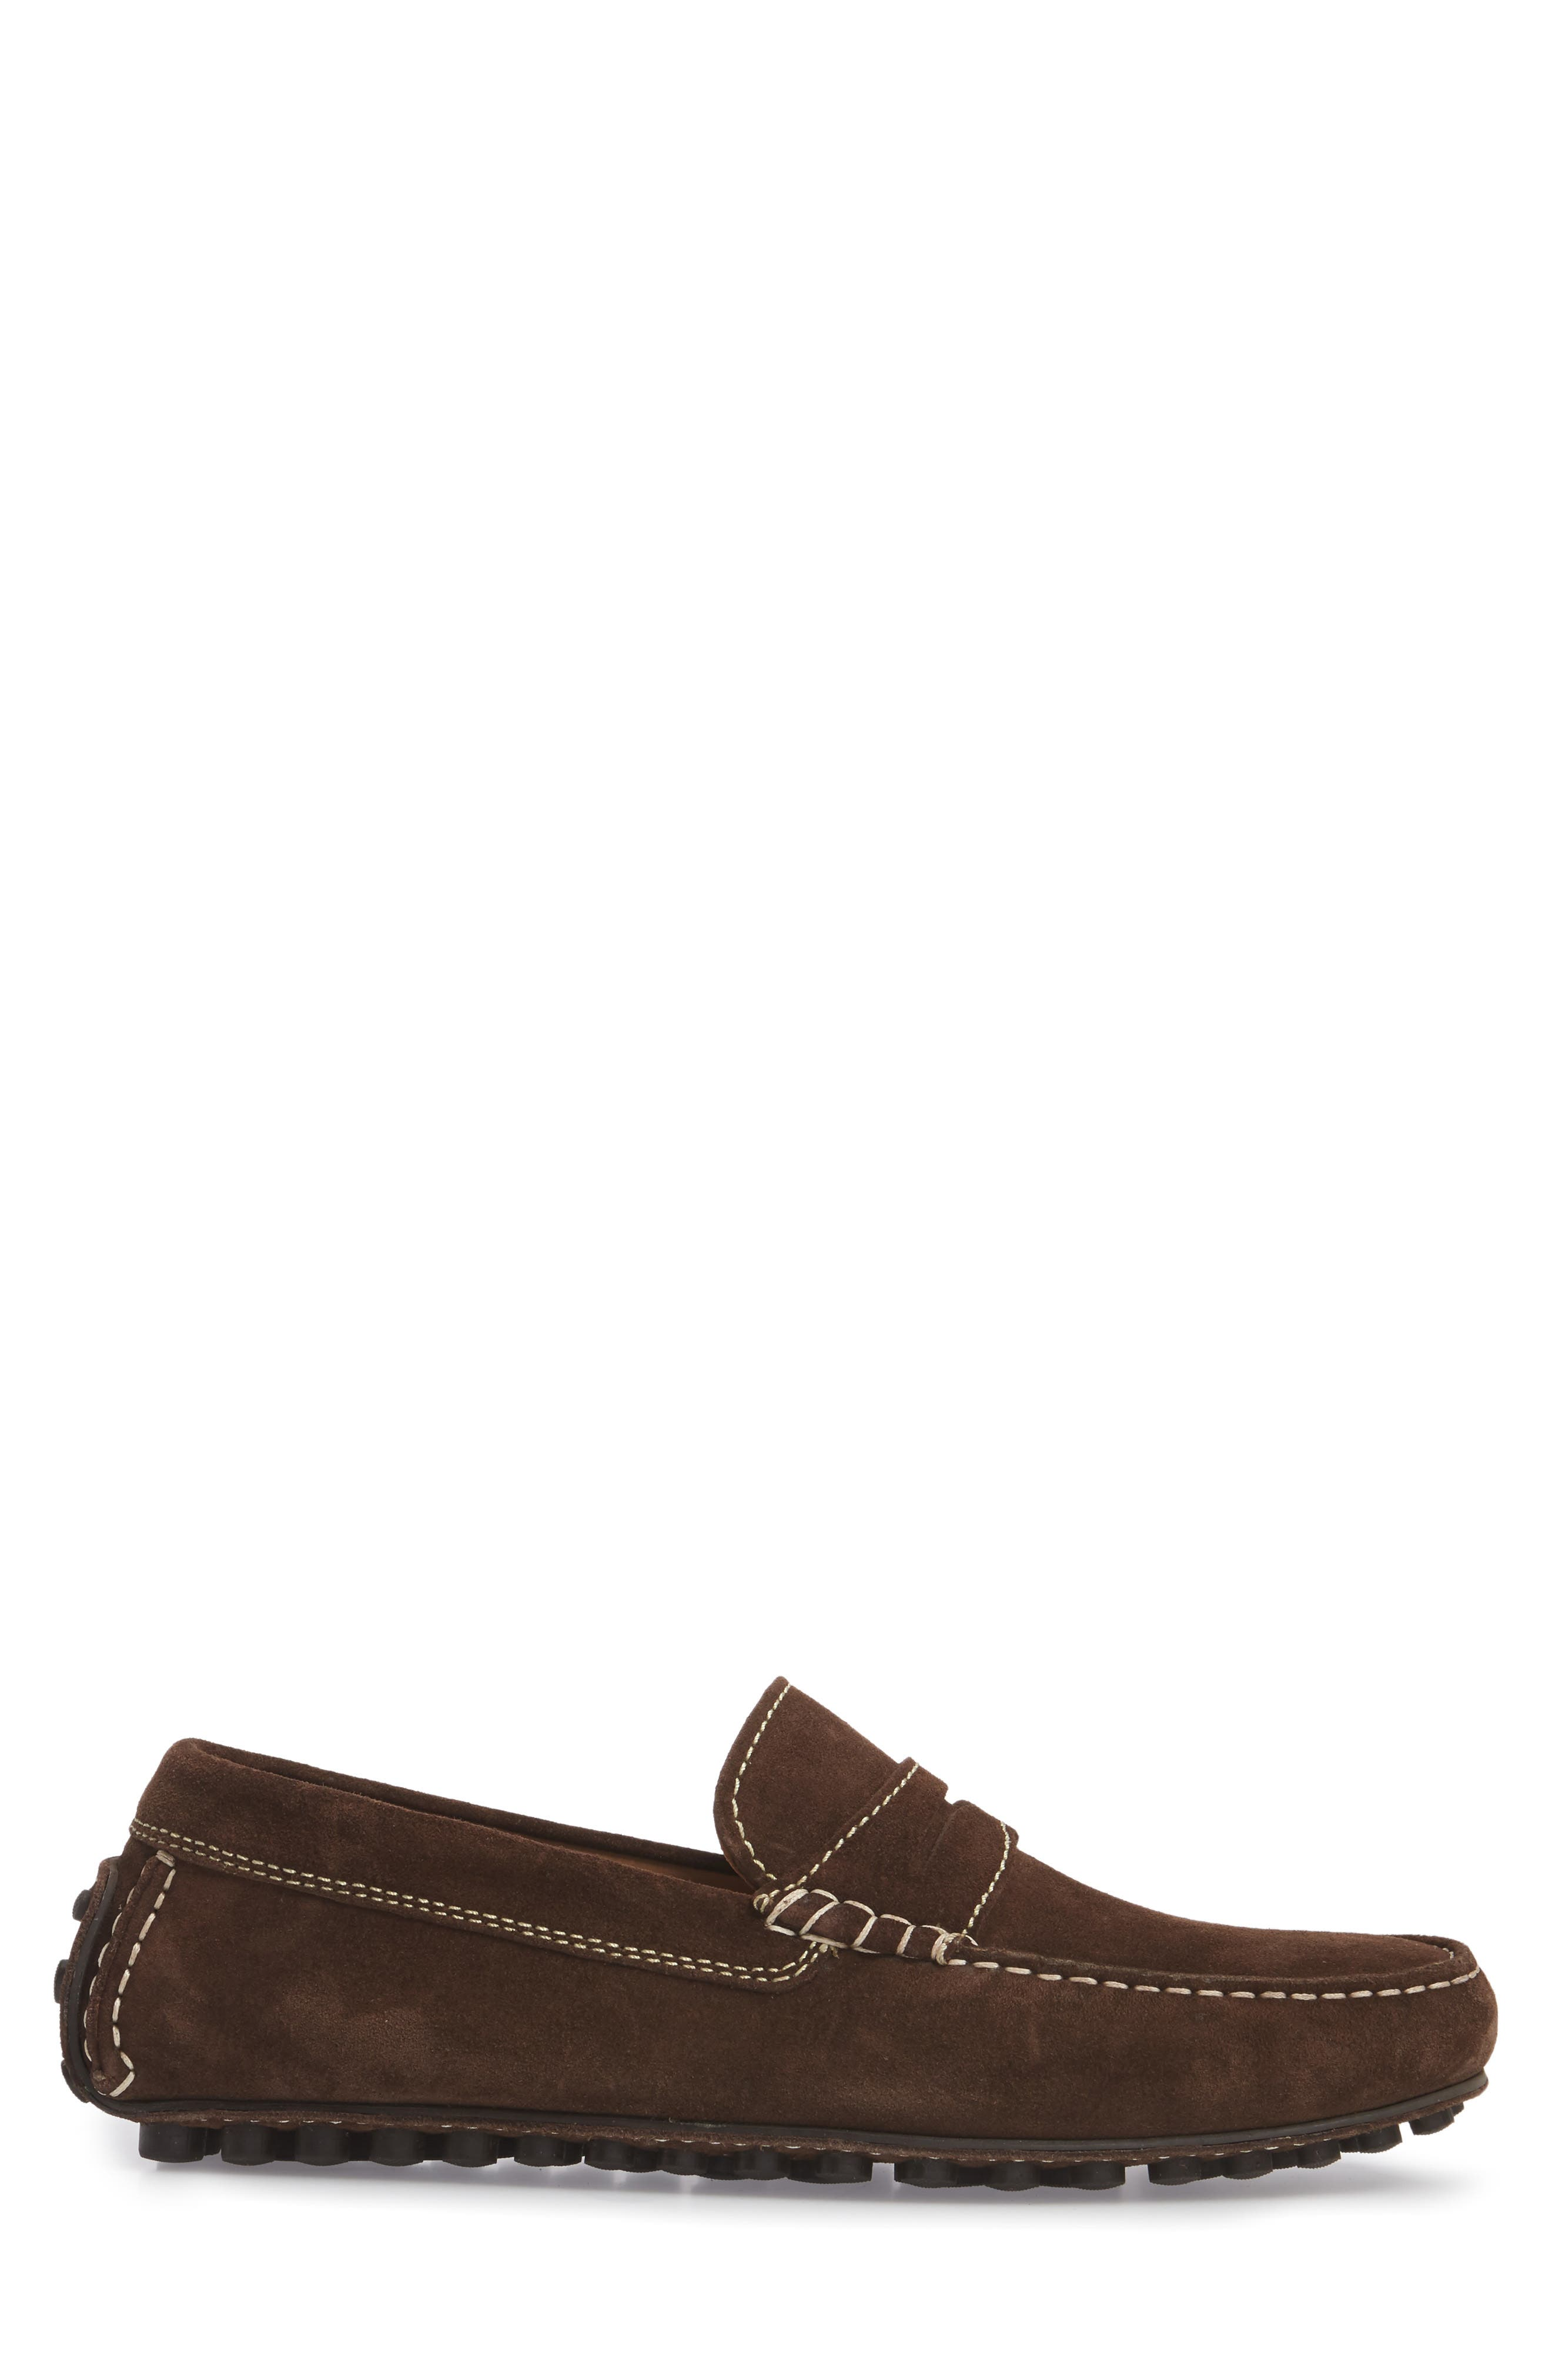 Le Mans Penny Driving Loafer,                             Alternate thumbnail 3, color,                             CHOCOLATE